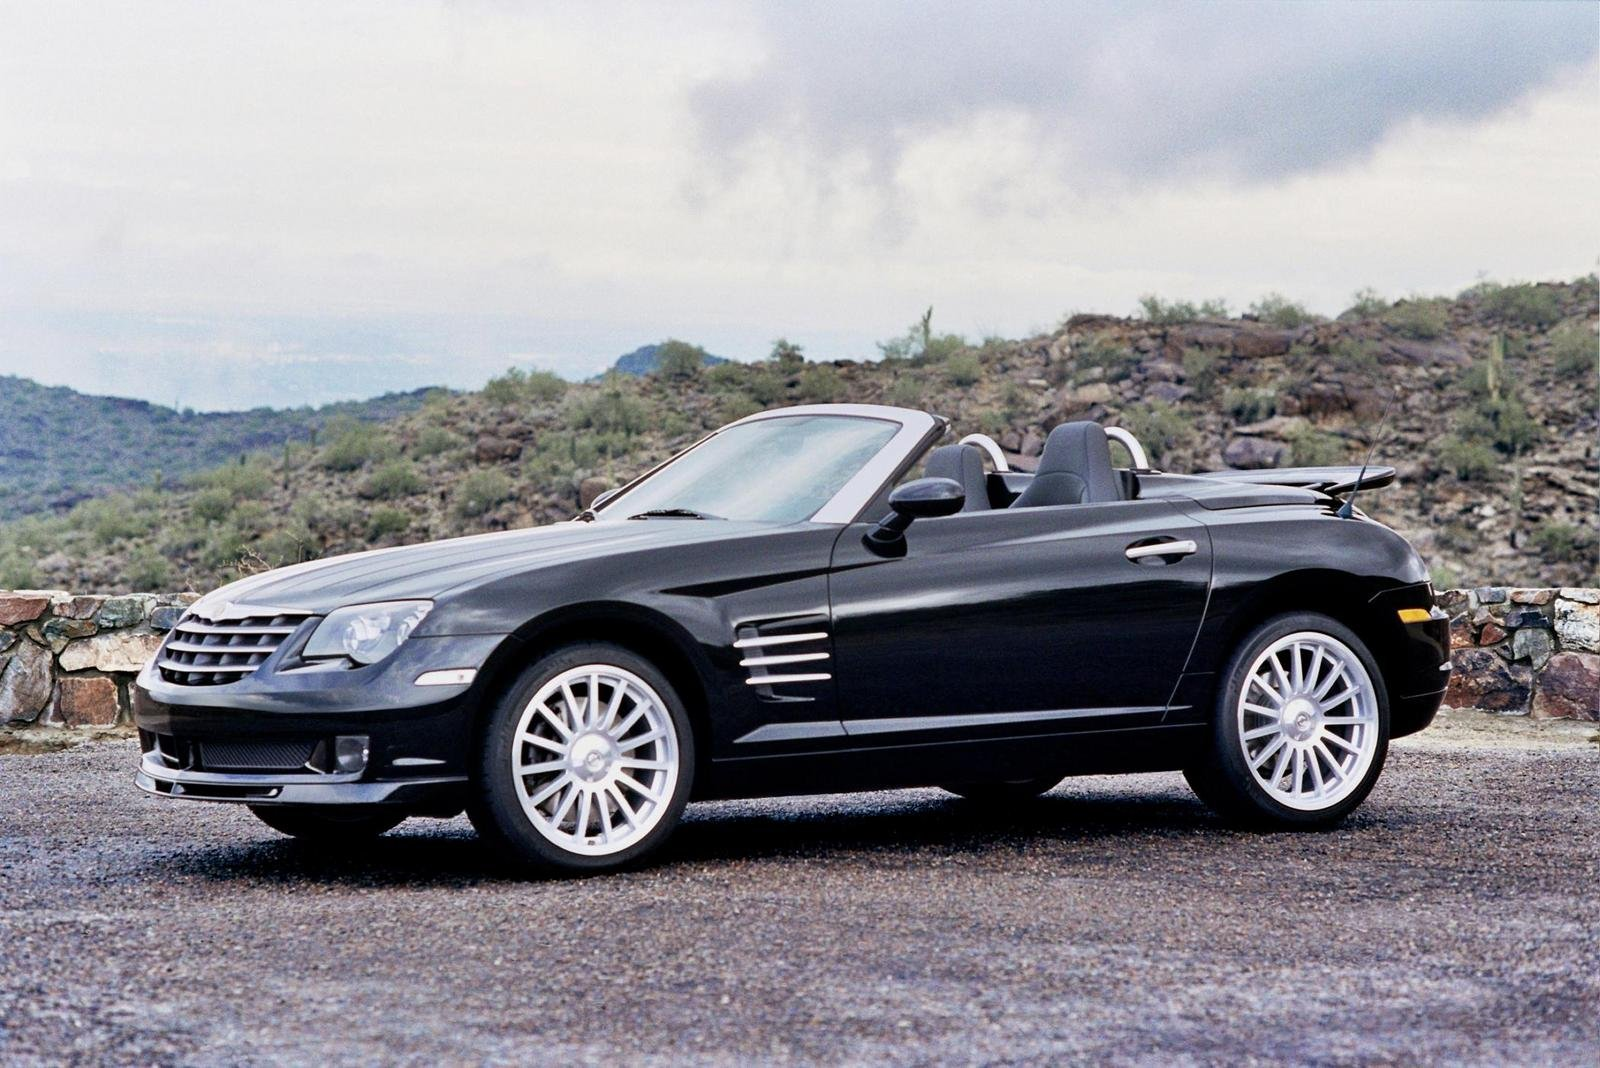 2006 chrysler crossfire srt6 picture 107310 car review top speed. Cars Review. Best American Auto & Cars Review